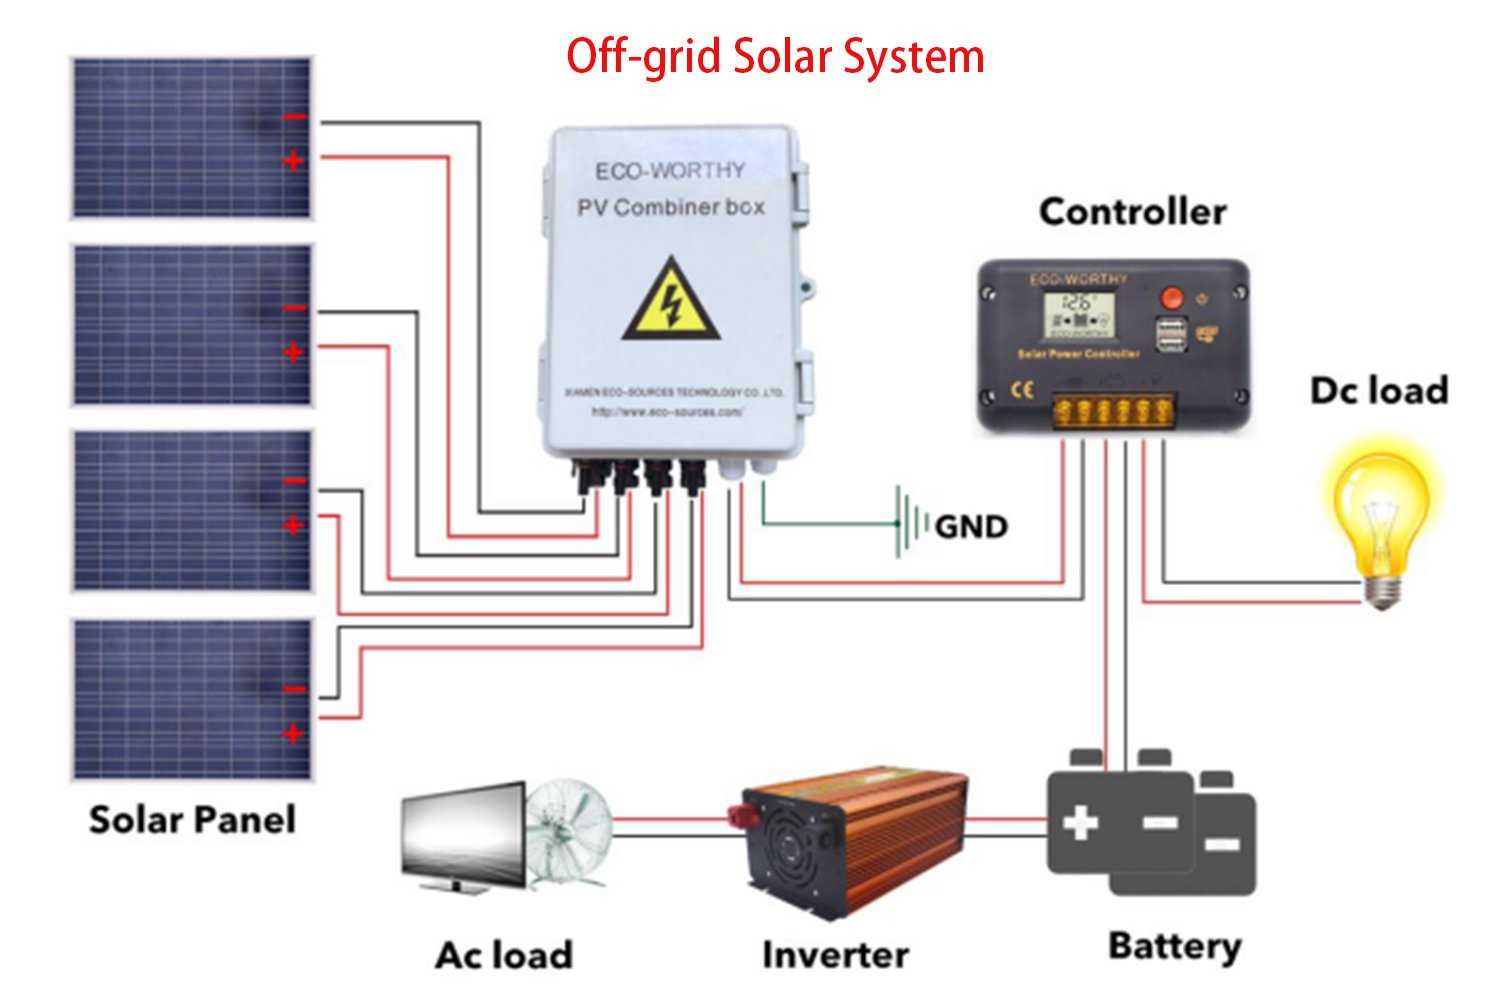 Eco Llc 4 String Pv Combiner Box With Lighting Arrester Solar Panel Diagram 10a Breaker Universal Connectors Grounding Bus Bar Ideal For Off Grid